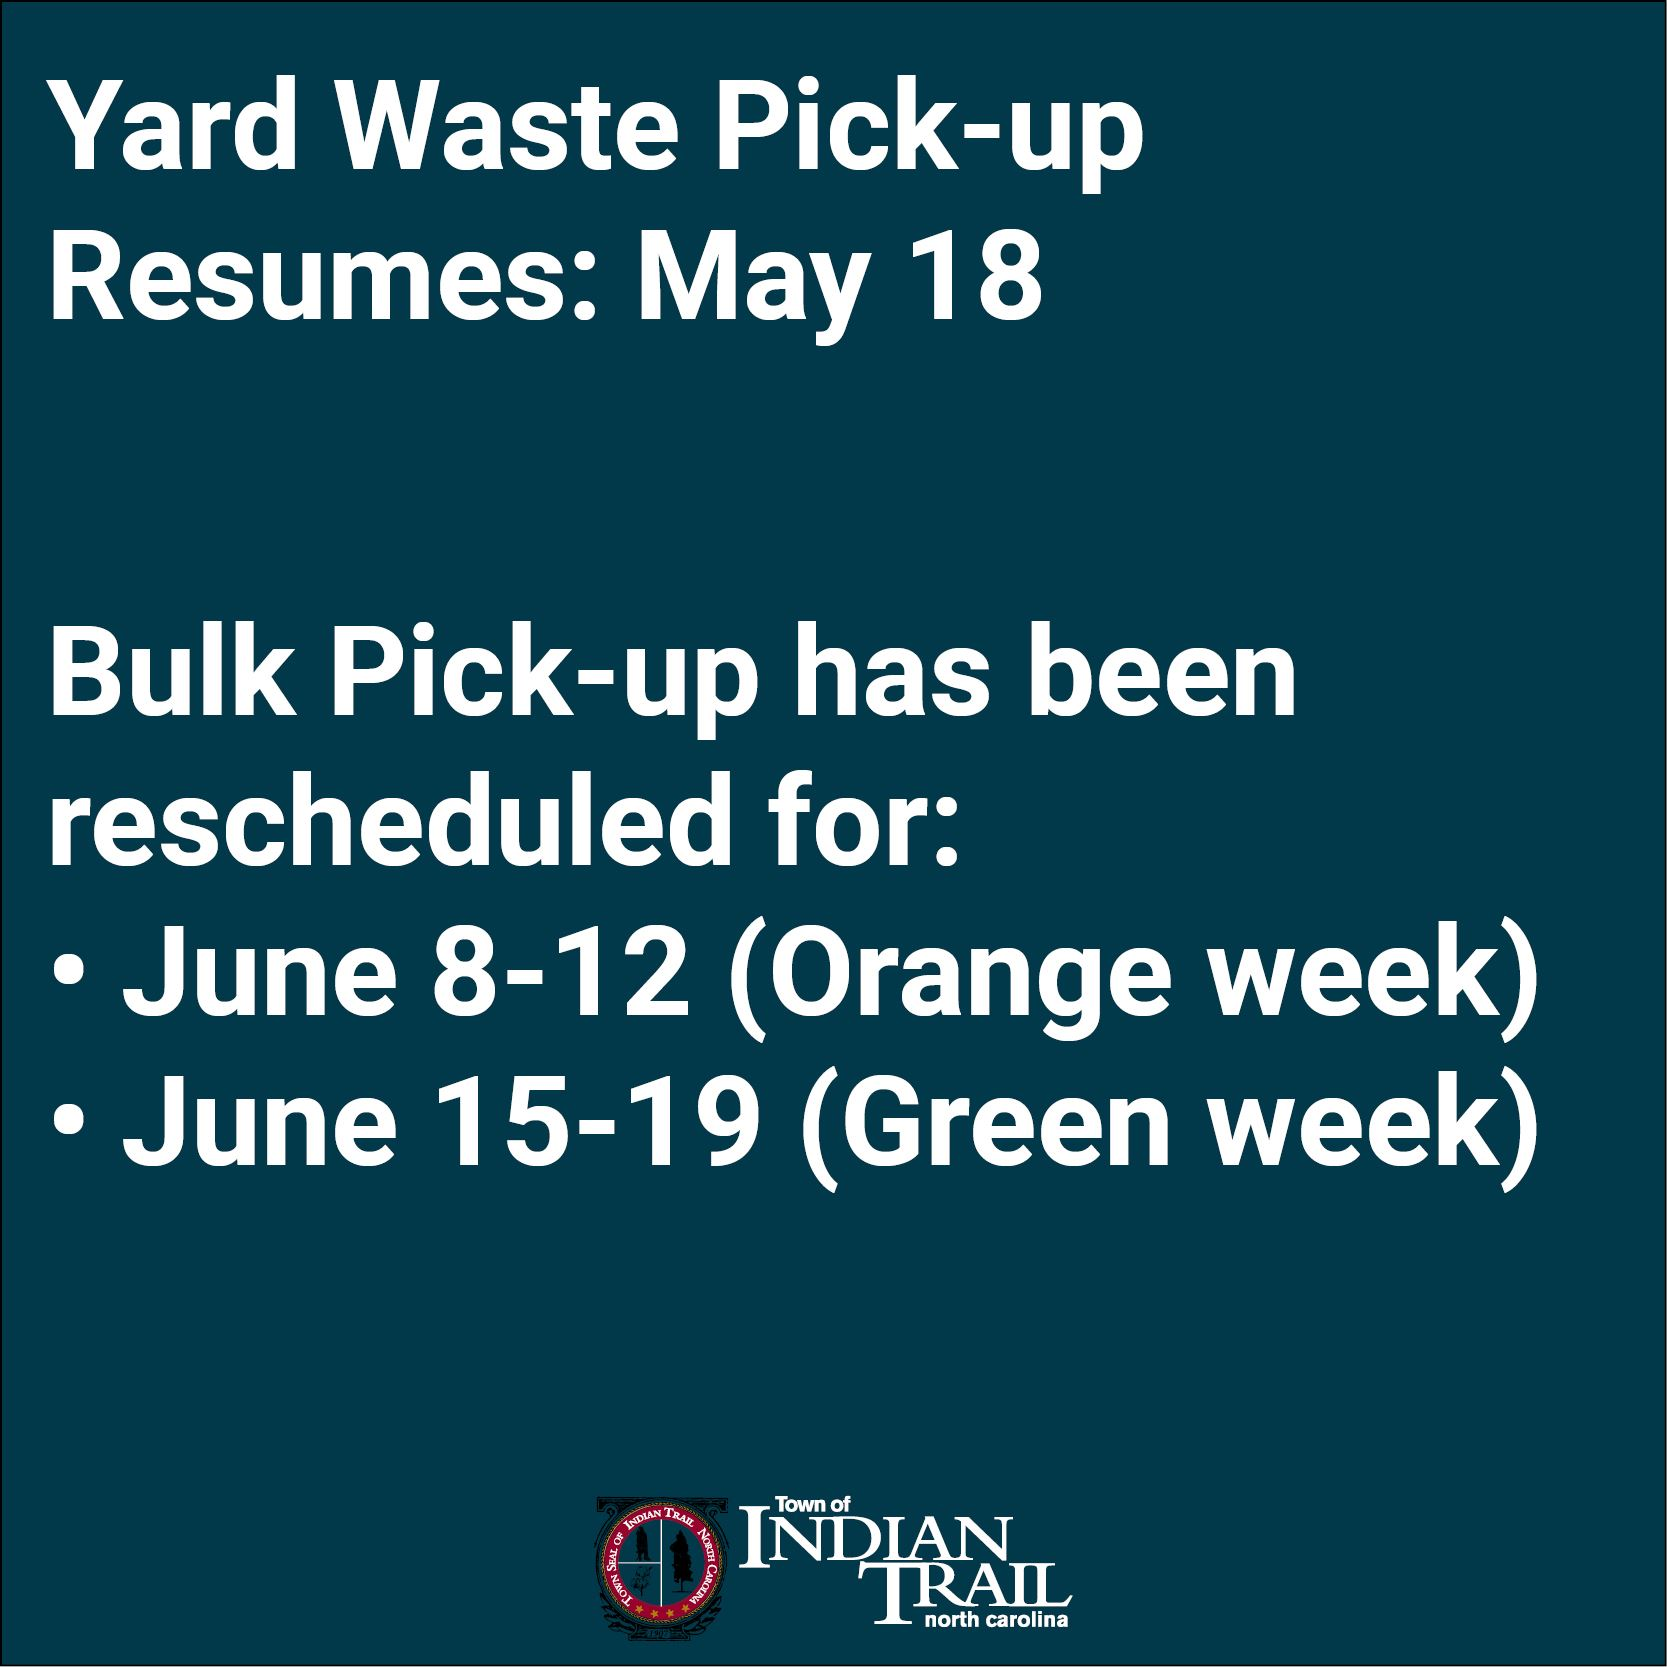 Yard Waste and Bulk Pick-up Resume